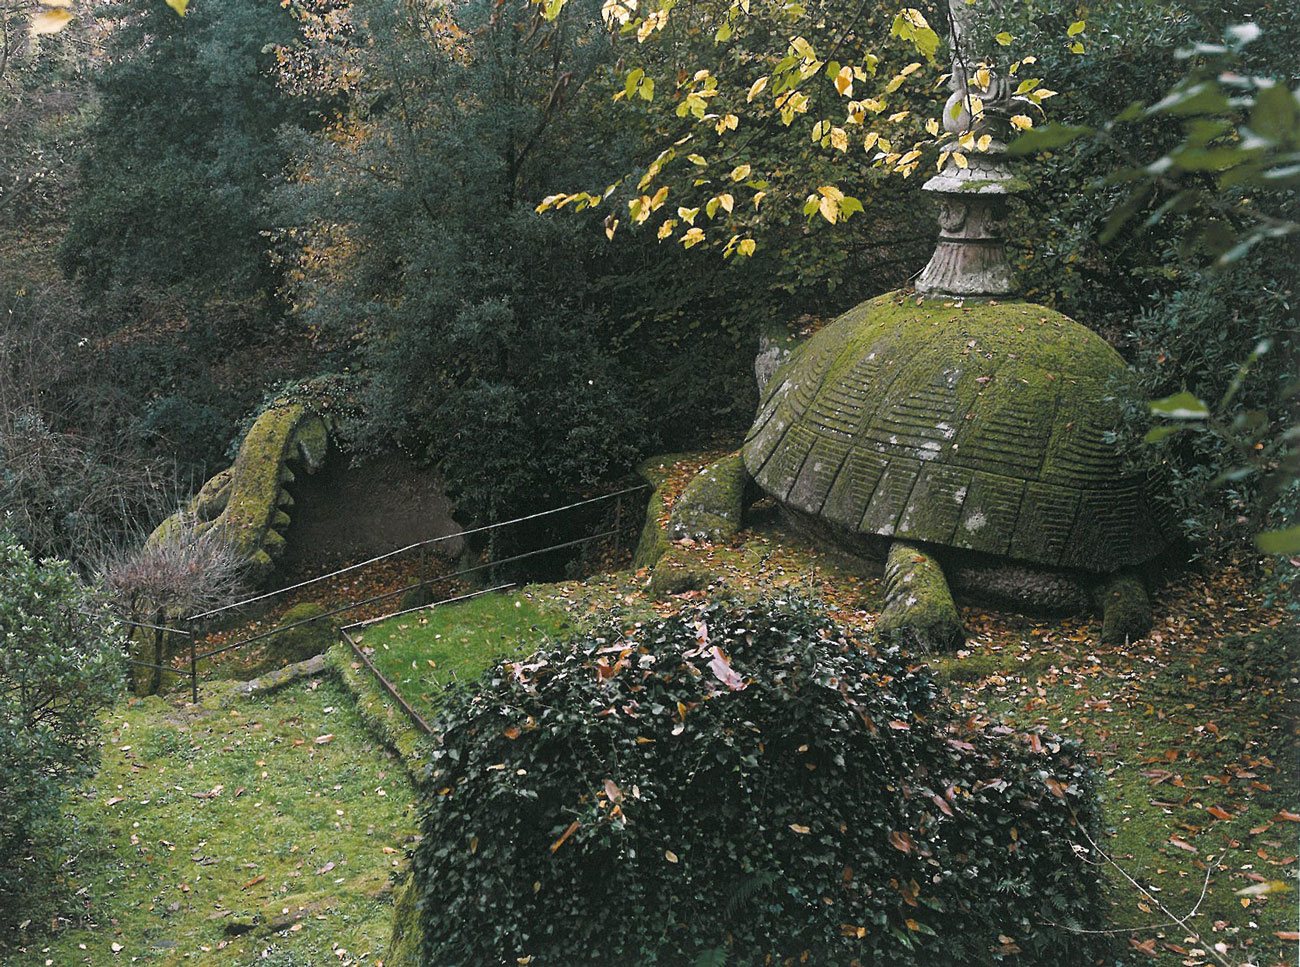 View from above of The Tortoise, and the nearby Whale's Mouth. Image courtesy of THE GARDEN AT BOMARZO, by Jessie Sheeler.